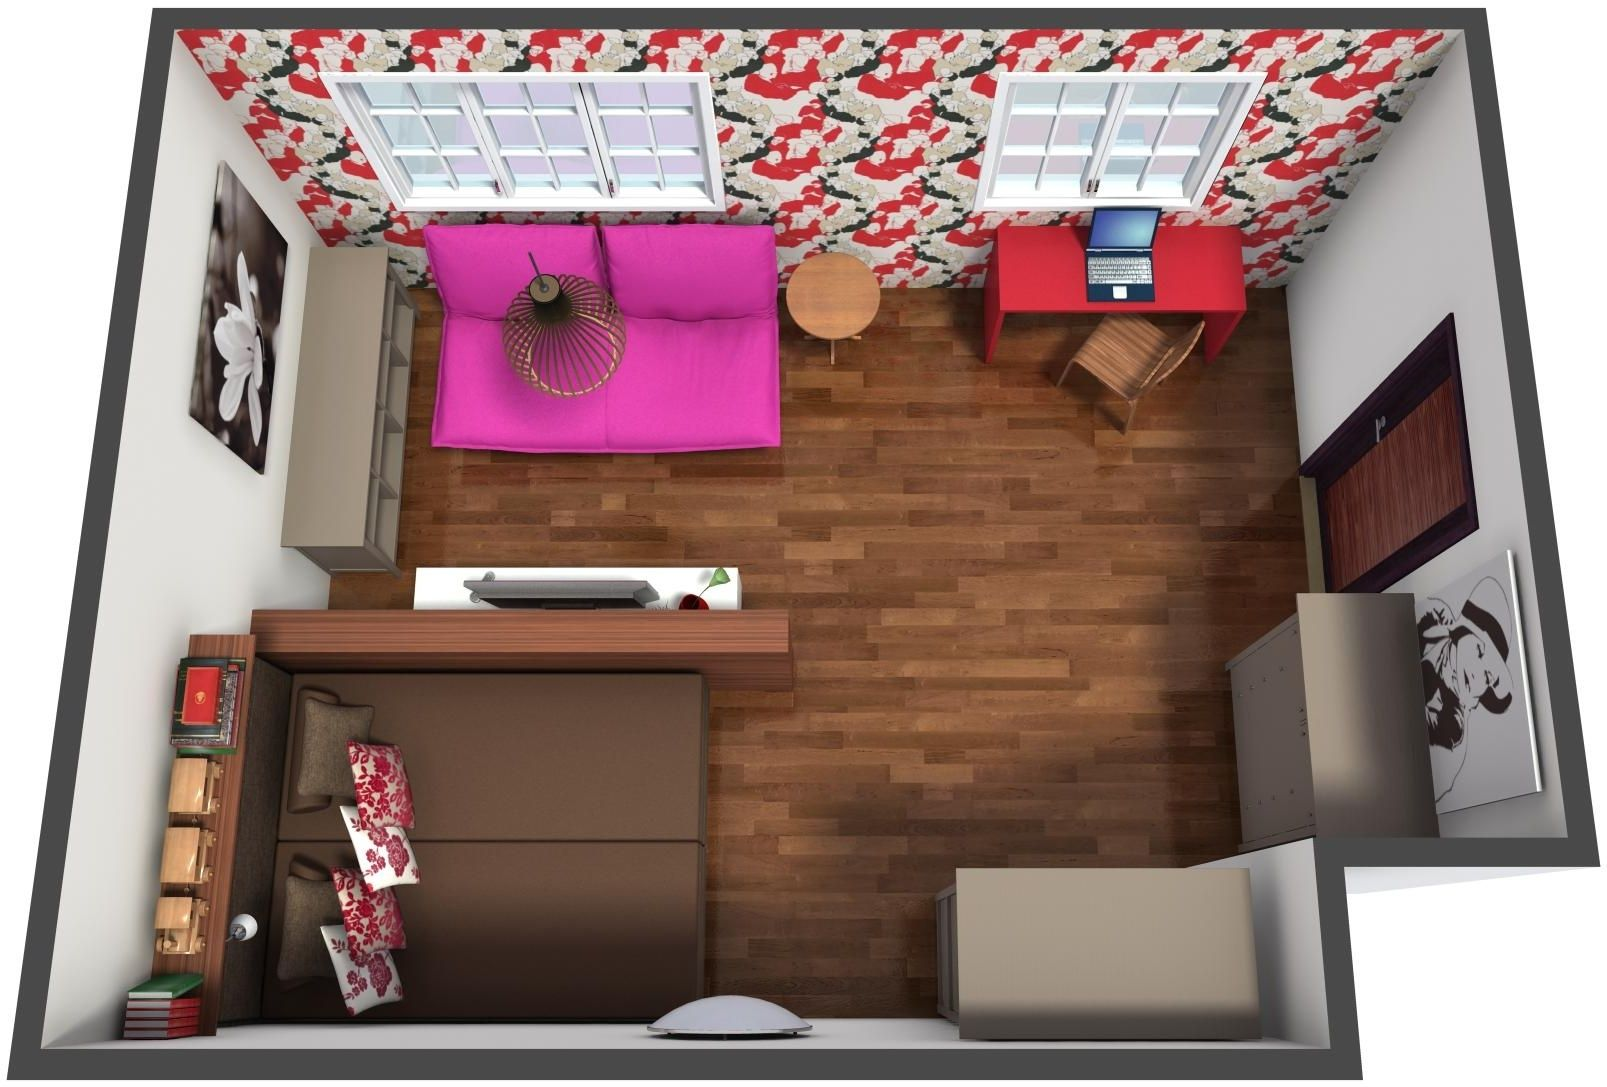 Aerial View Of A Floor Plan For Cozy Colorful Studio Apartment With Decor From Ikea Usa Laura Ashley Official Samsung Tv